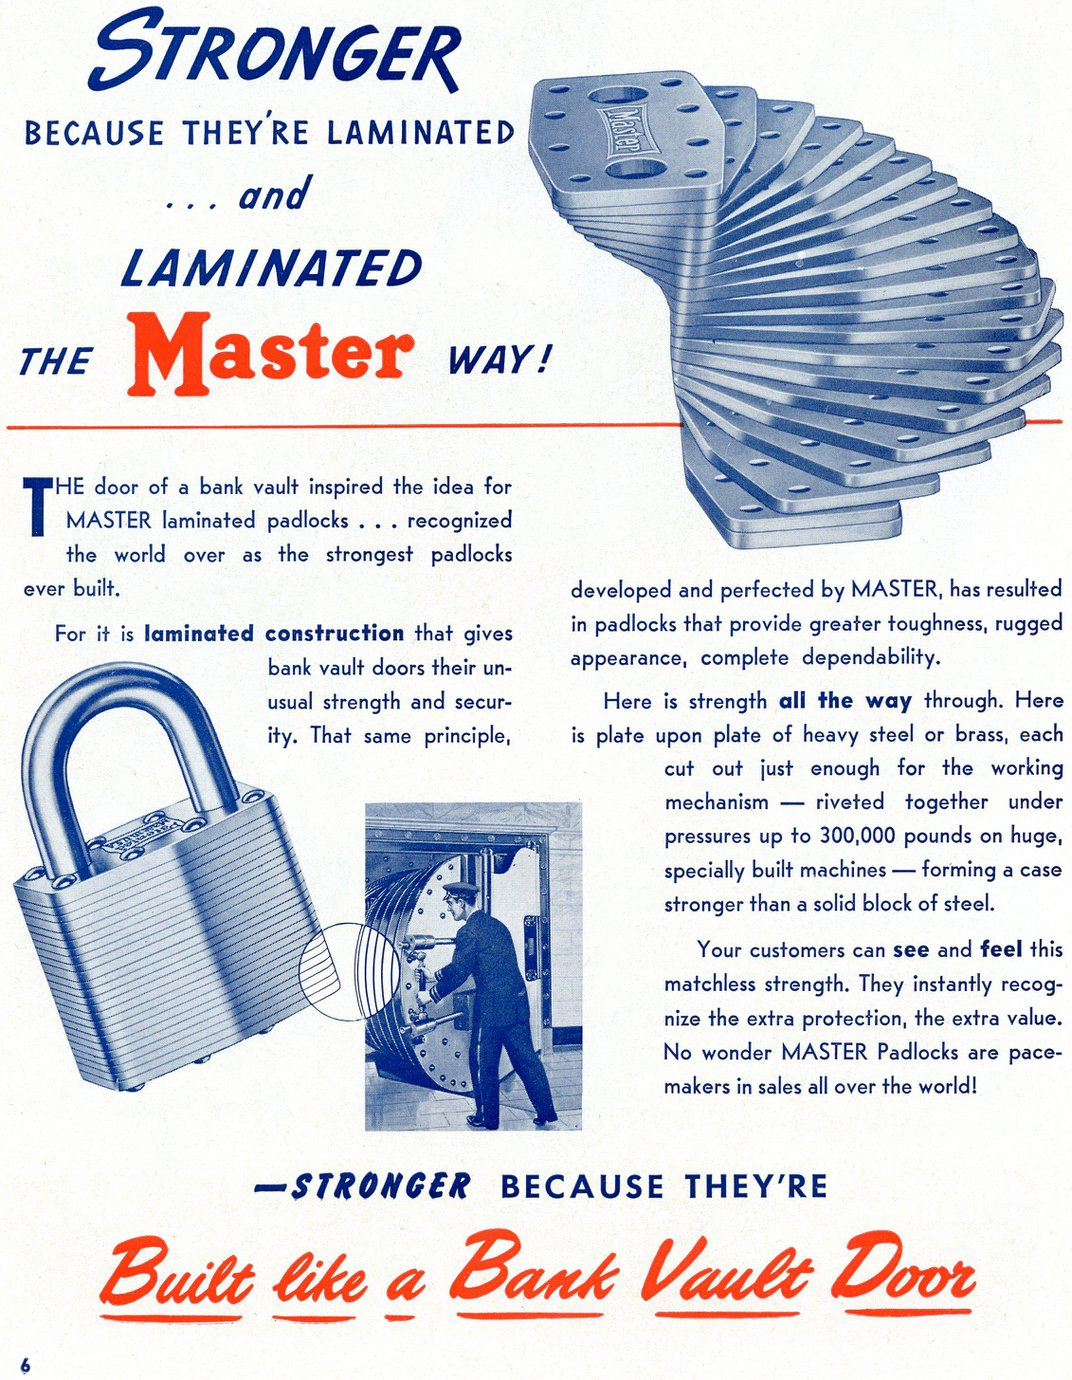 Master Lock Has Had a Hold on the Industry for 100 Years